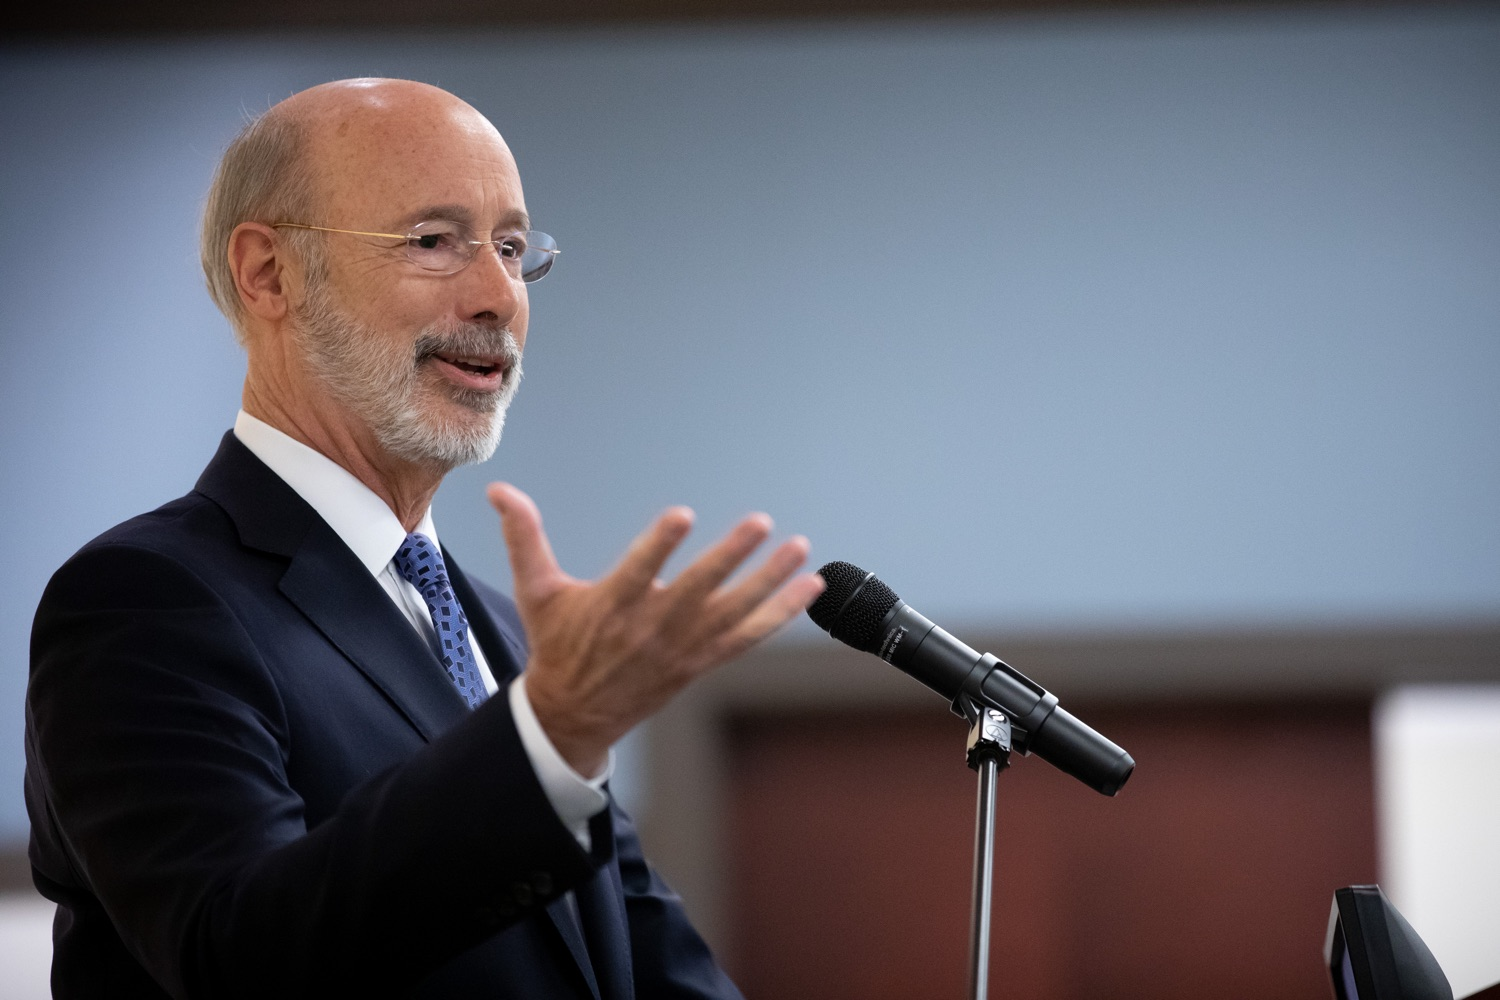 "<a href=""http://filesource.abacast.com/commonwealthofpa/photo/17598_gov_charter_schools_dz_001.jpg"" target=""_blank"">⇣ Download Photo<br></a>Pennsylvania Governor Tom Wolf speaks about charter school reform at a meeting of the Pennsylvania Association of School Administrators.  Governor Tom Wolfs commonsense plan to improve the educational quality of charter schools and control rising costs will save nearly $280 million a year, the governor told the Pennsylvania Association of School Administrators today. The governor has a three-part plan to fix Pennsylvanias charter school law which is regarded as one of the worst in the nation.  - Harrisburg, PA. Friday, November 15, 2019."